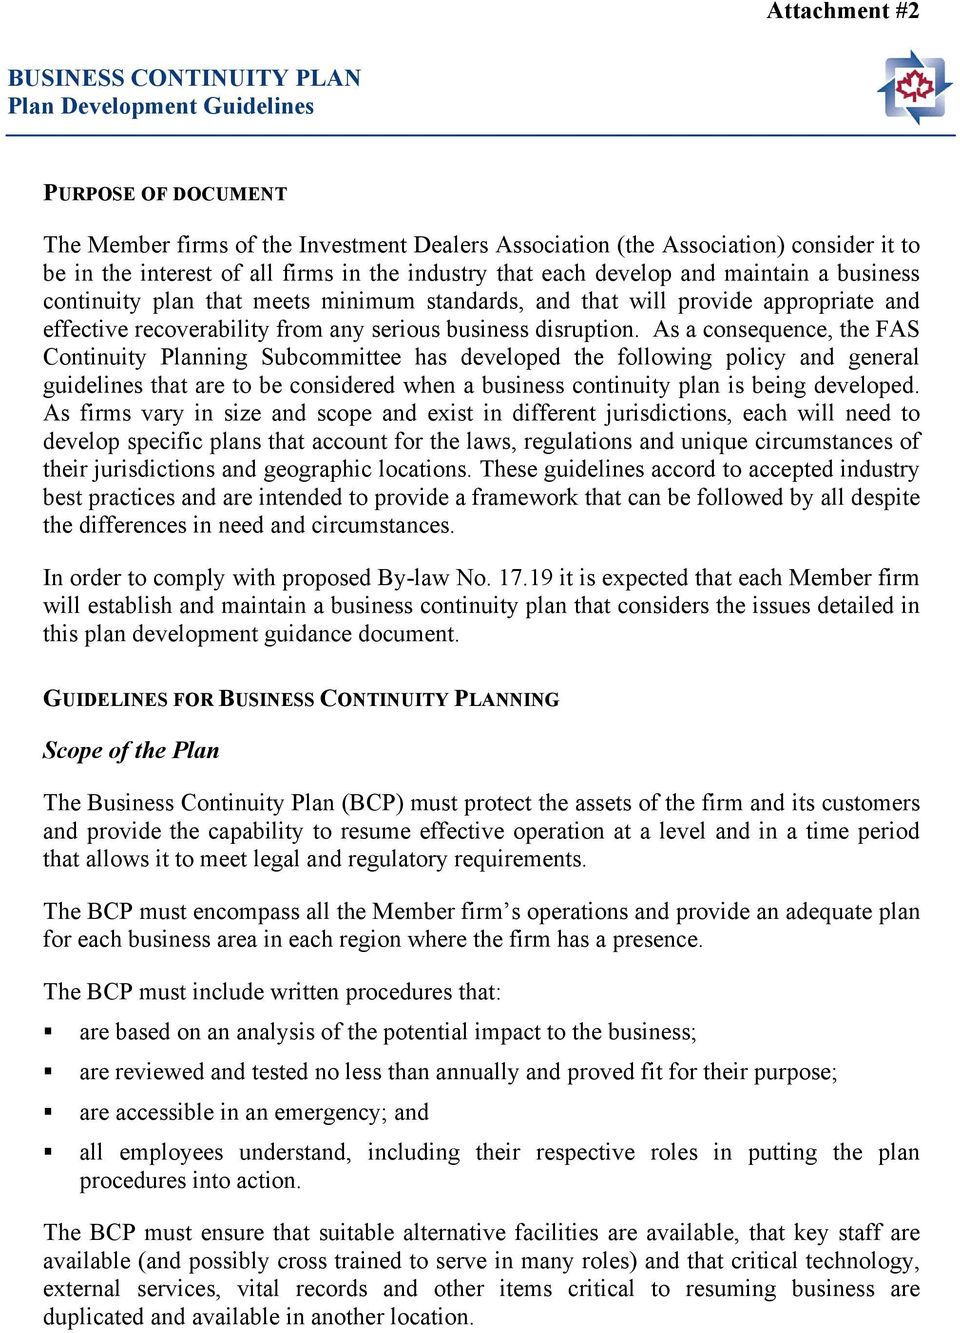 As a consequence, the FAS Continuity Planning Subcommittee has developed the following policy and general guidelines that are to be considered when a business continuity plan is being developed.